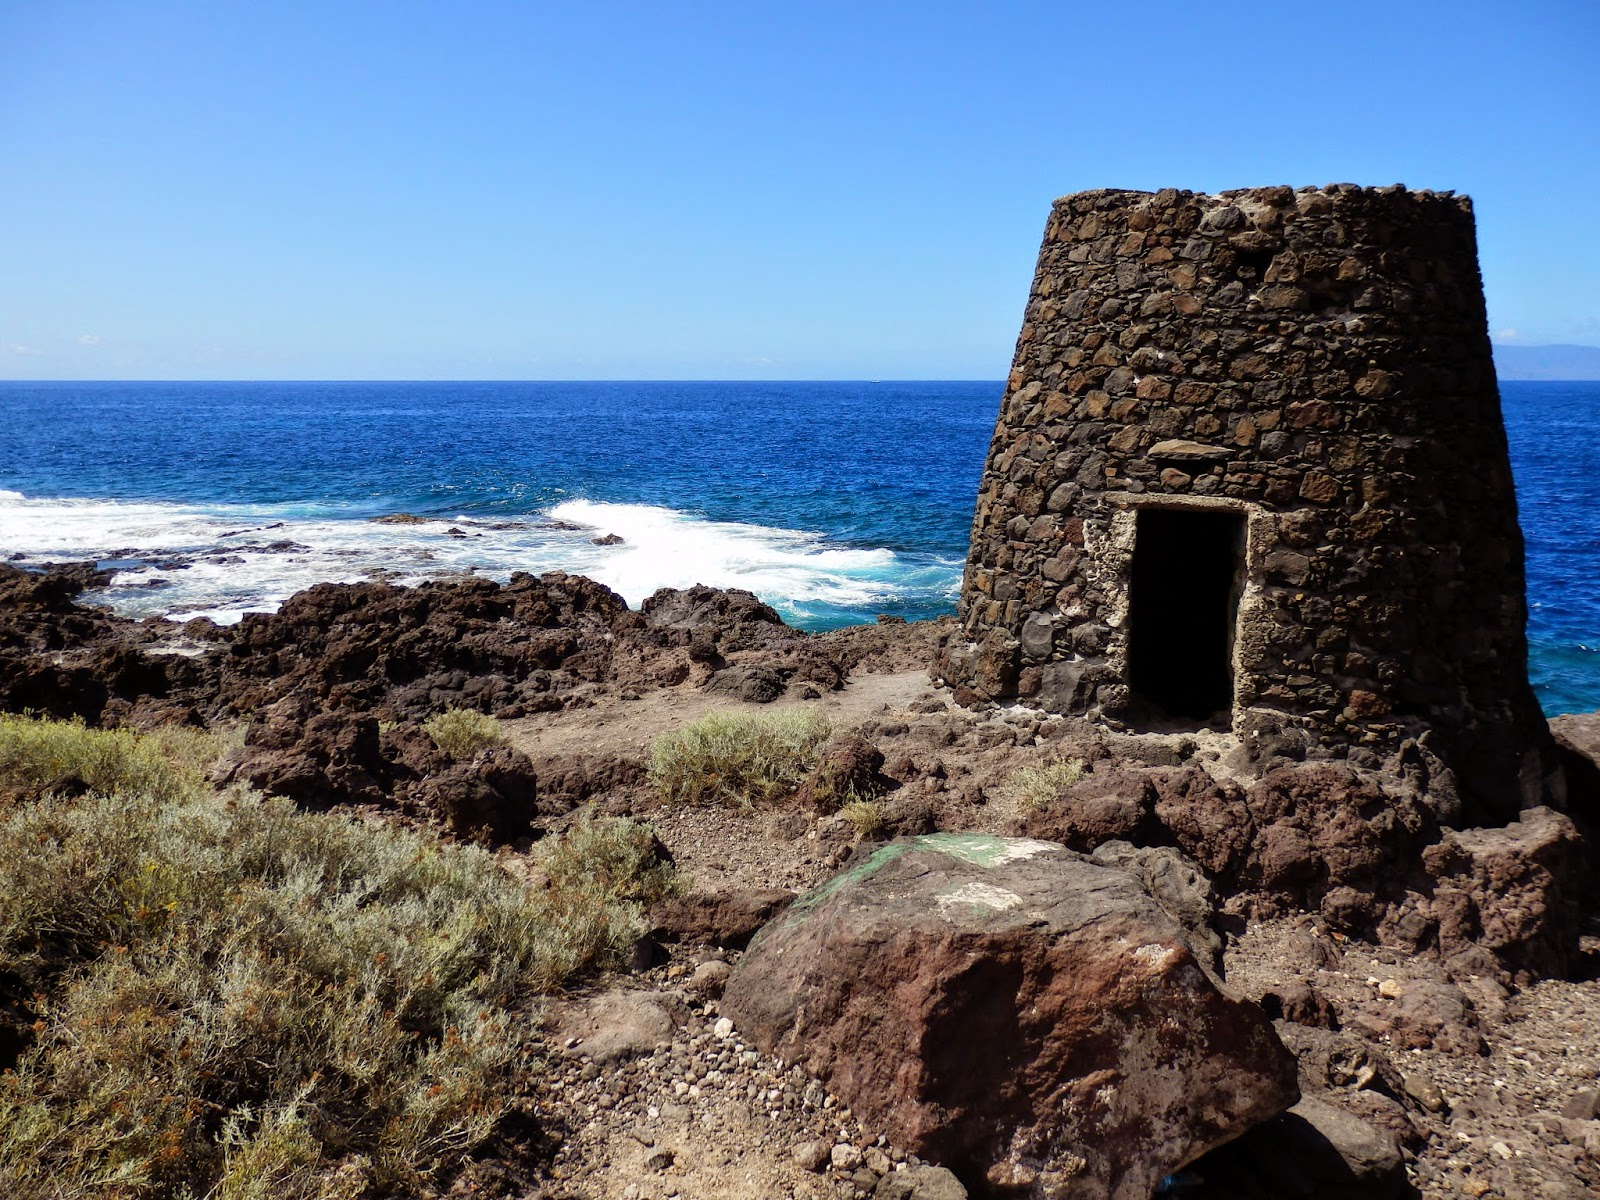 Kiln in Tenerife Canary Islands